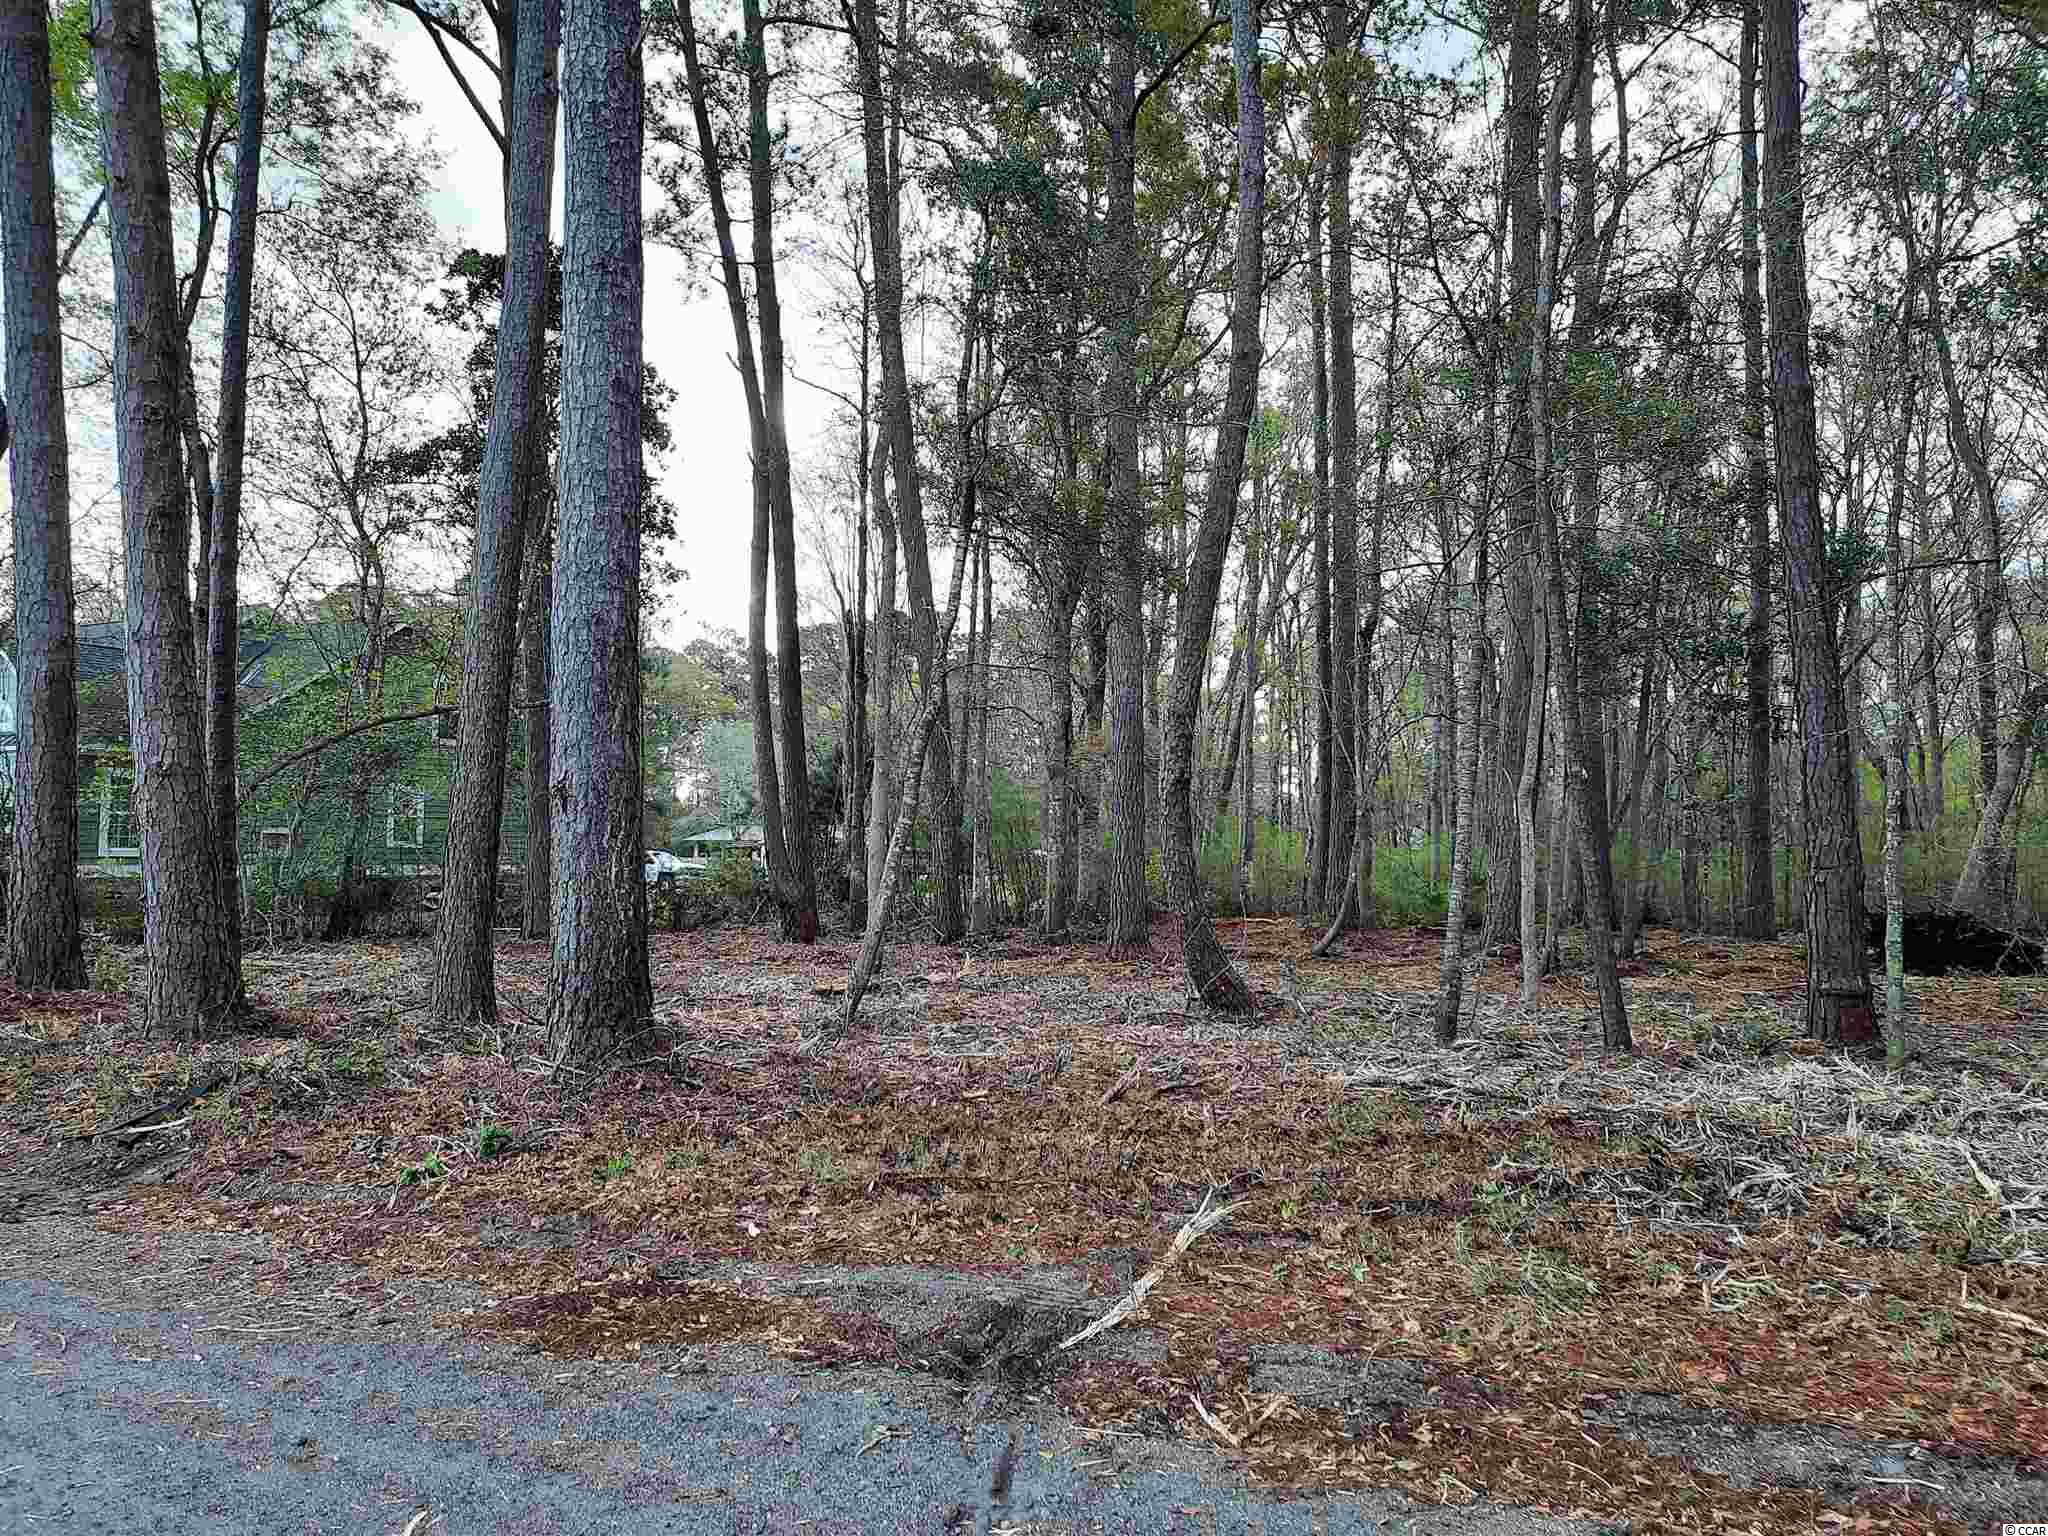 Rare chance to own one of the last vacant no HOA lots left in Murrells Inlet. Berkeley Ct. is located just off the beaten path , yet, so very close to all the action ion Murrells Inlet. This lot, at half an acre, has all the room you could need for every you you have. Camper, boat, tractor, trailer, you name it, there's room for it. Very quiet street with deed restrictions limited to stick built homes only. This lot is a short golf cart ride to the Murrells Inlet Marshwalk/Murrells Inlet Boat Landing/ Huntington Beach. Lot inventory for Murrells Inlet is extremely scarce, don't let this one get away from you .